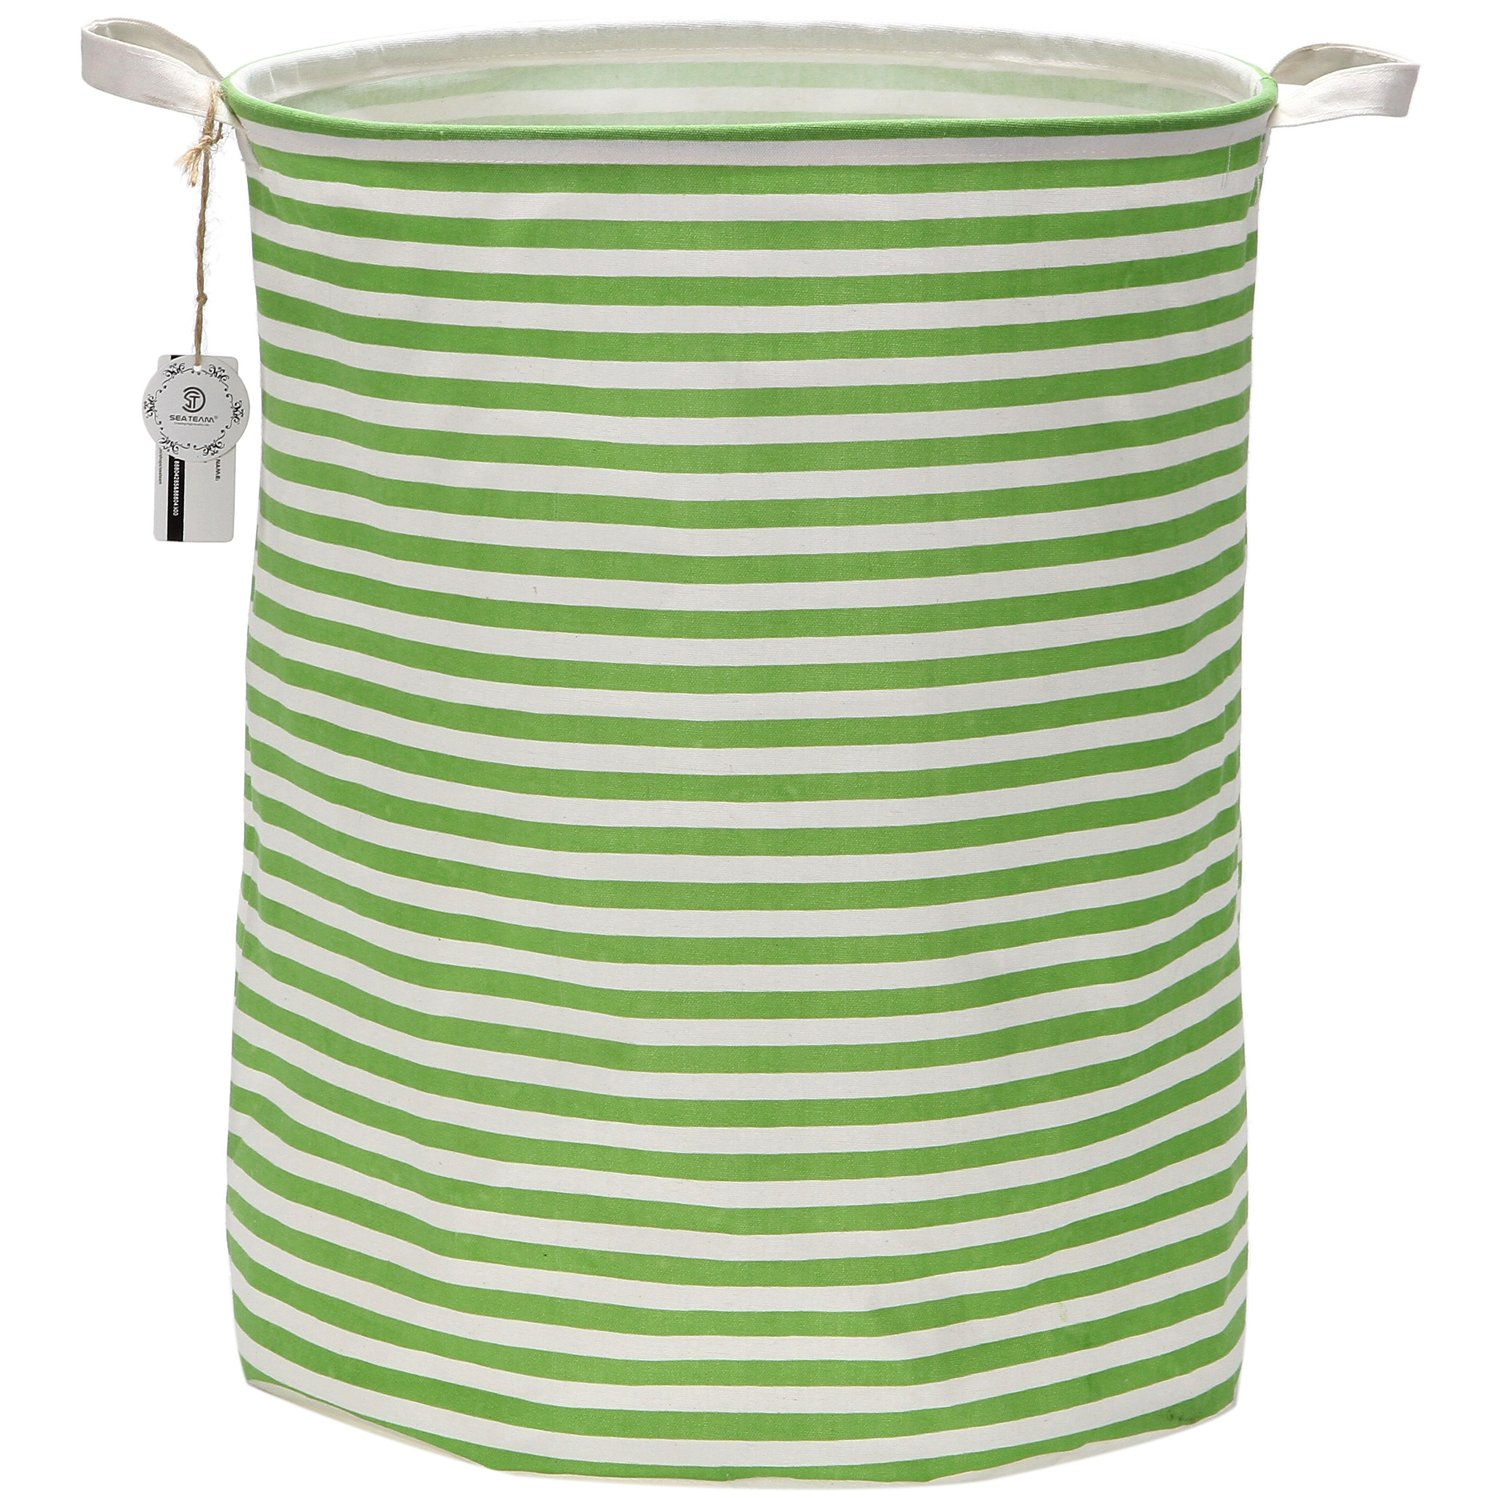 "Sea Team 19.7"" Large Sized Waterproof Coating Ramie Cotton Fabric Folding Laundry Hamper Bucket Cylindric Burlap Canvas Storage Basket with Stylish Greenery & White Stripe Design"